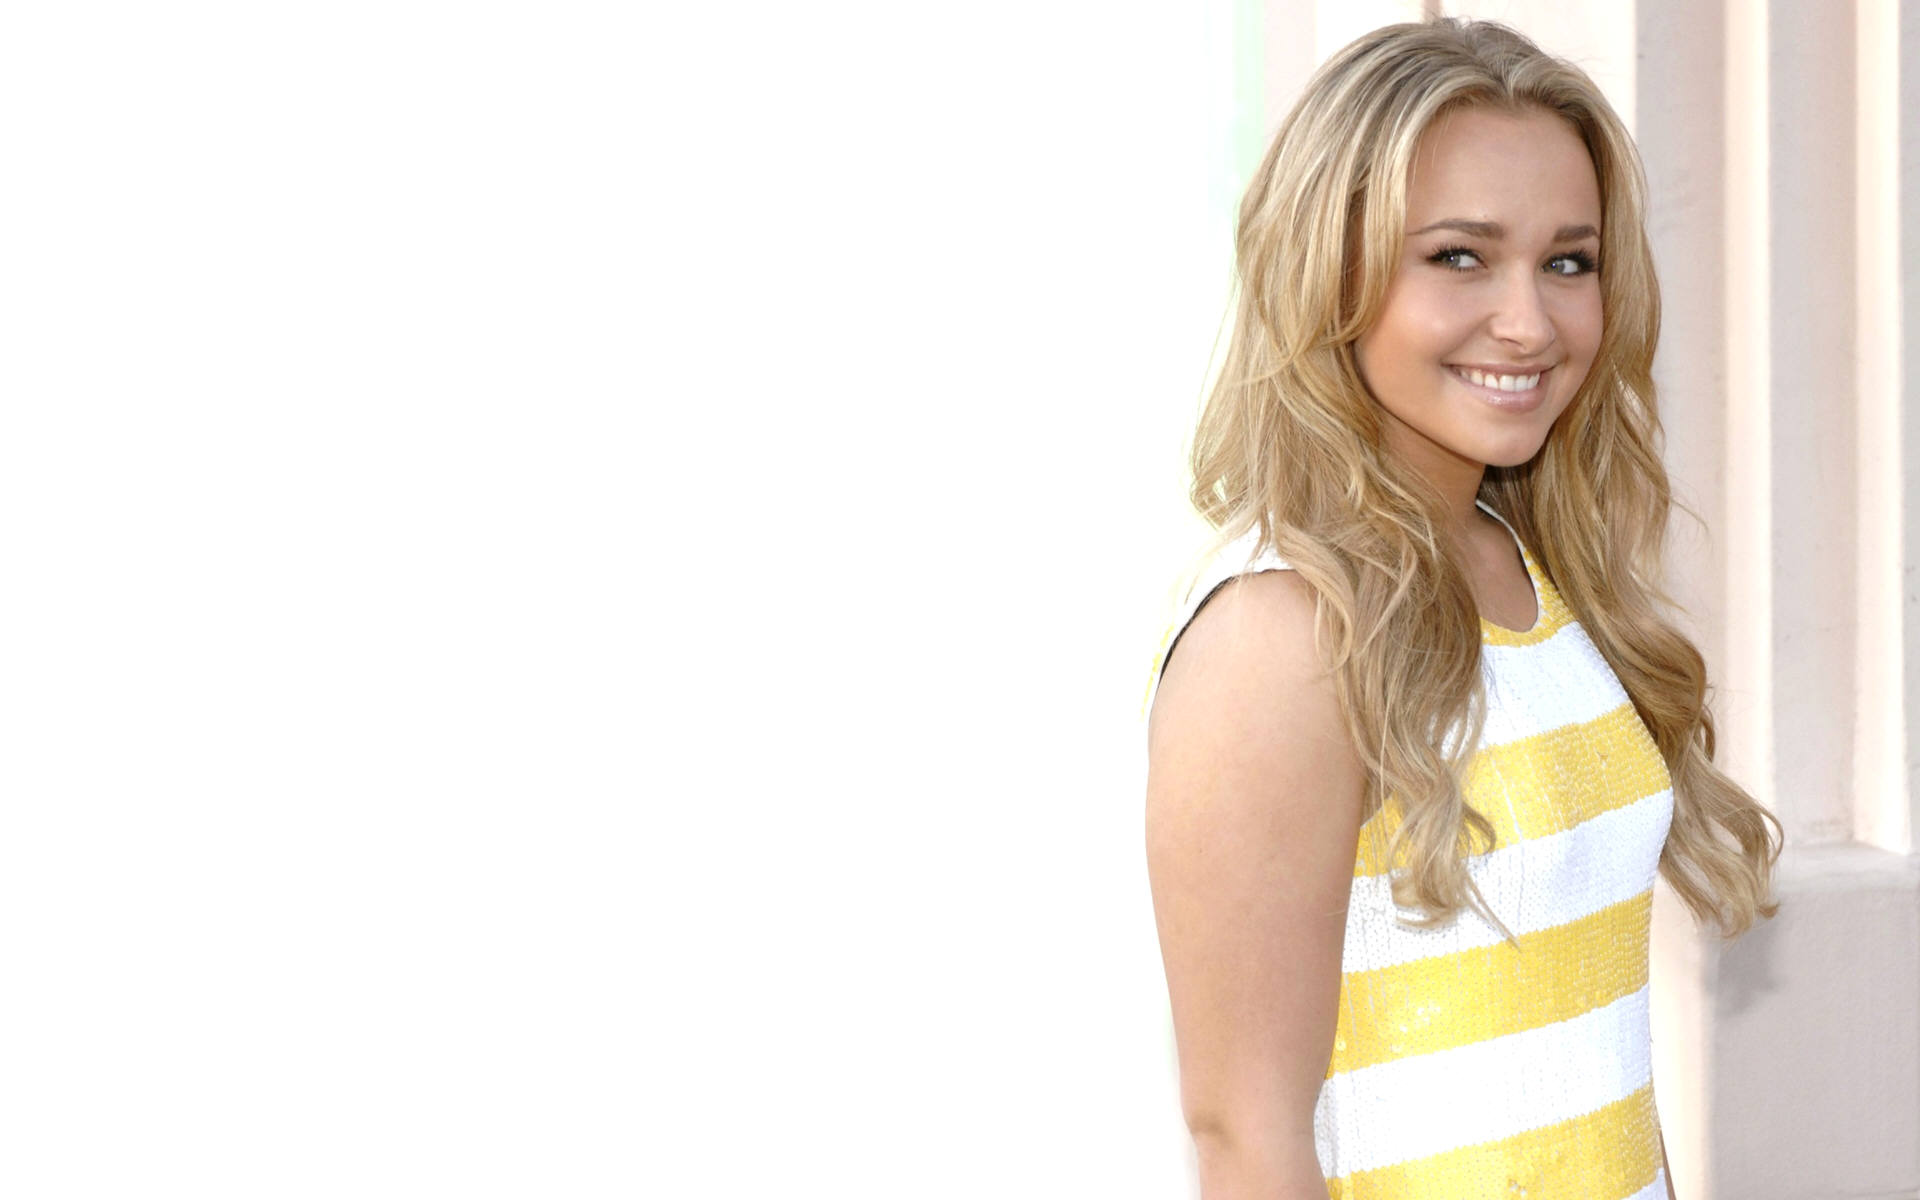 ICloud Hayden Panettiere nudes (15 photos), Pussy, Is a cute, Selfie, butt 2019